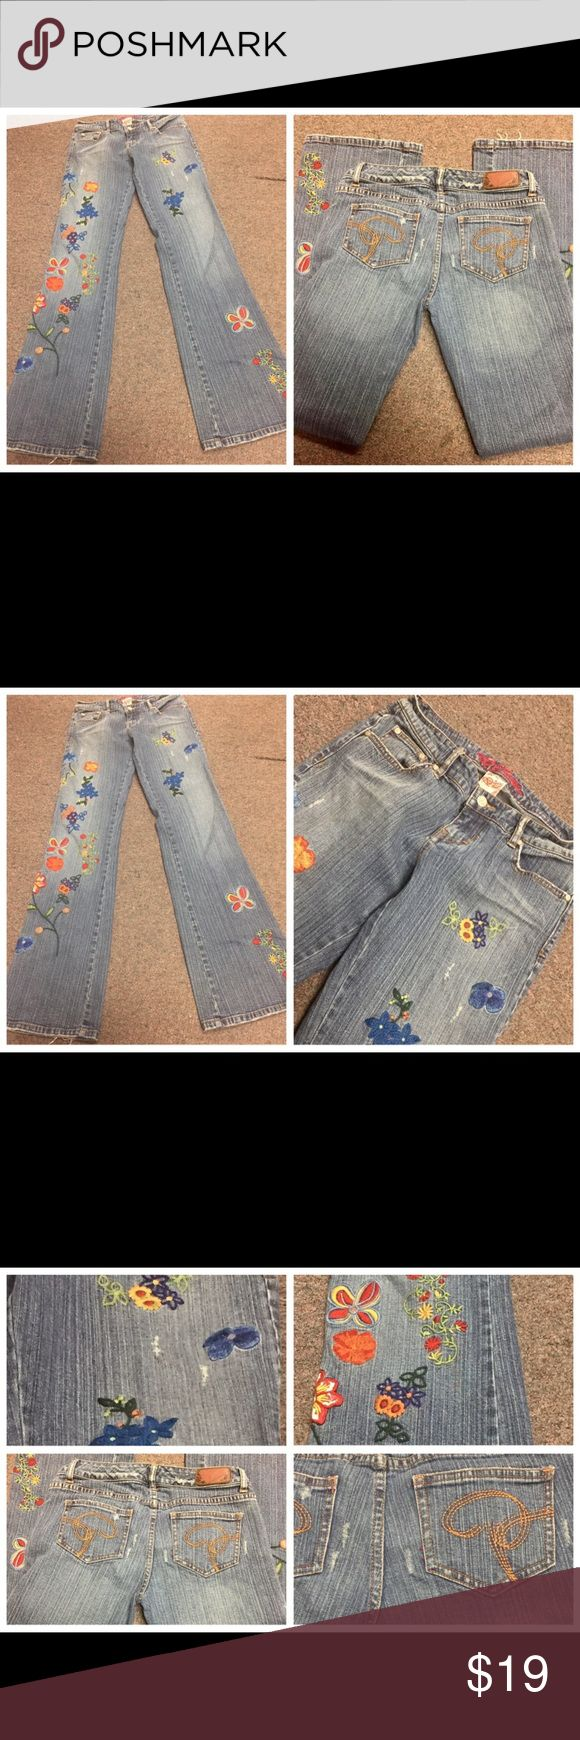 PRINCY BY JESSICA SIMPSON EMBROIDERED JEANS SZ 3 PRINCY BY JESSICA SIMPSON EMBROIDERED JEANS SZ 3 Jr. Distressed and overall factory fading. Waist measures 28 inches. Inseam is 33 inches. Front rise is 8 inches. Back rise is 12 inches.  080617–1 Jessica Simpson Jeans Flare & Wide Leg